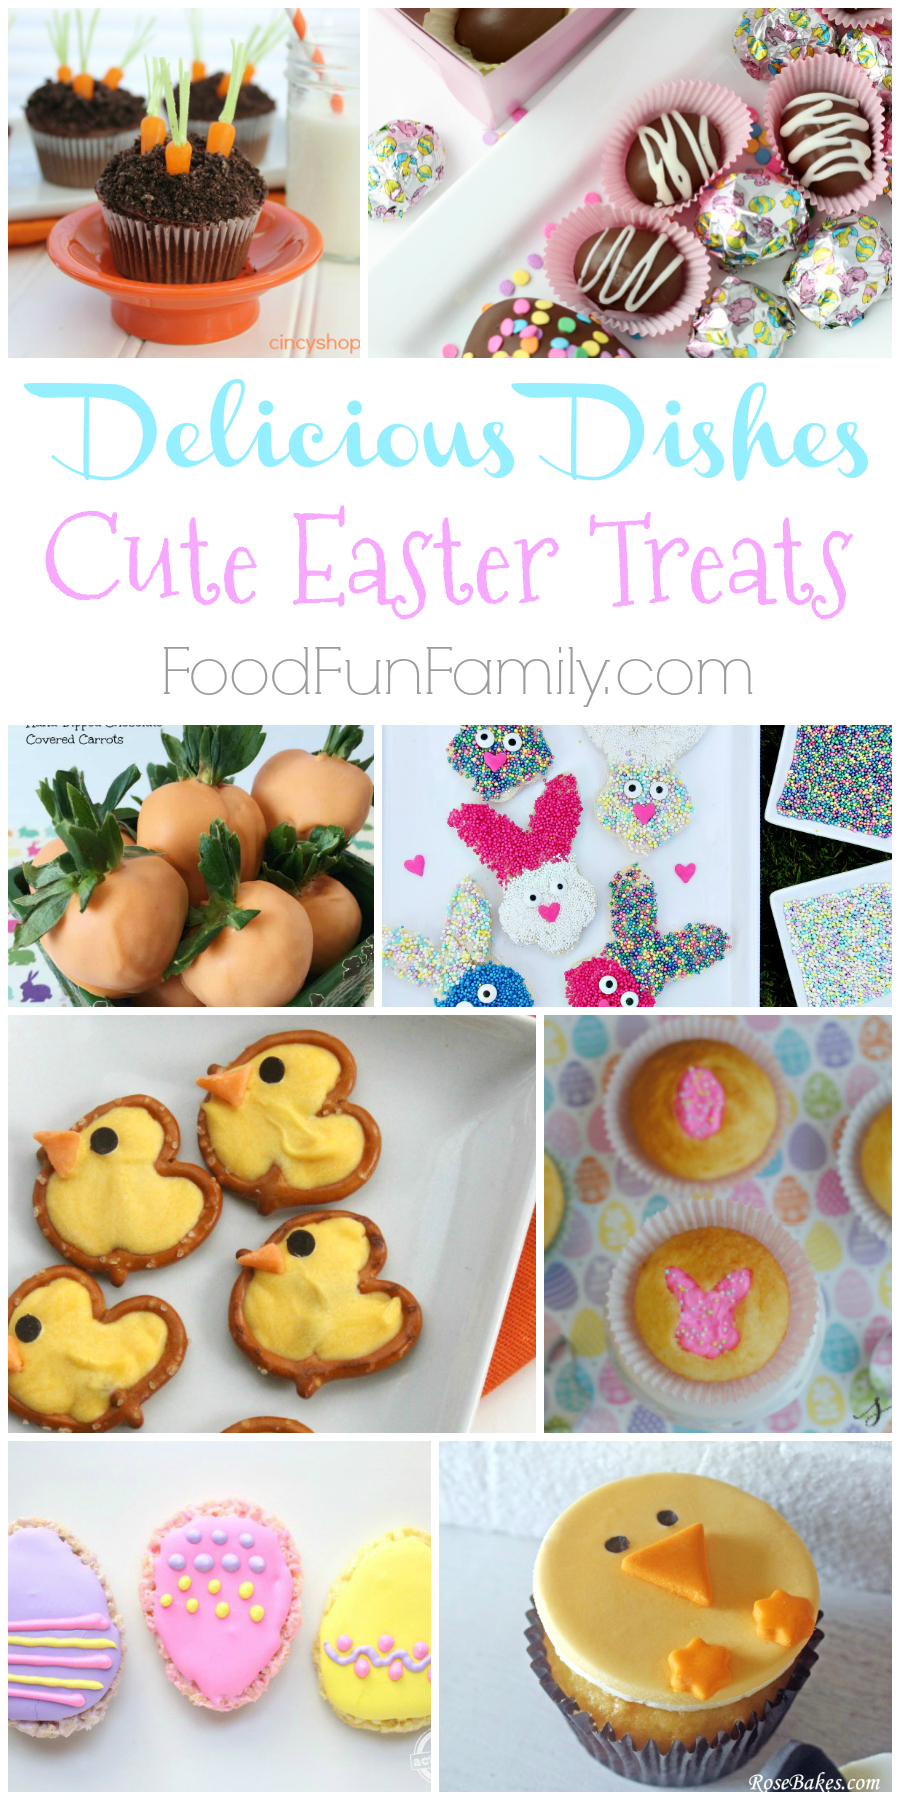 Cute Easter Treats - a Delicious Dishes Recipes Party collection of recipes from dozens of bloggers. Kids and adults alike will love these festive and adorable Easter and Spring treats!